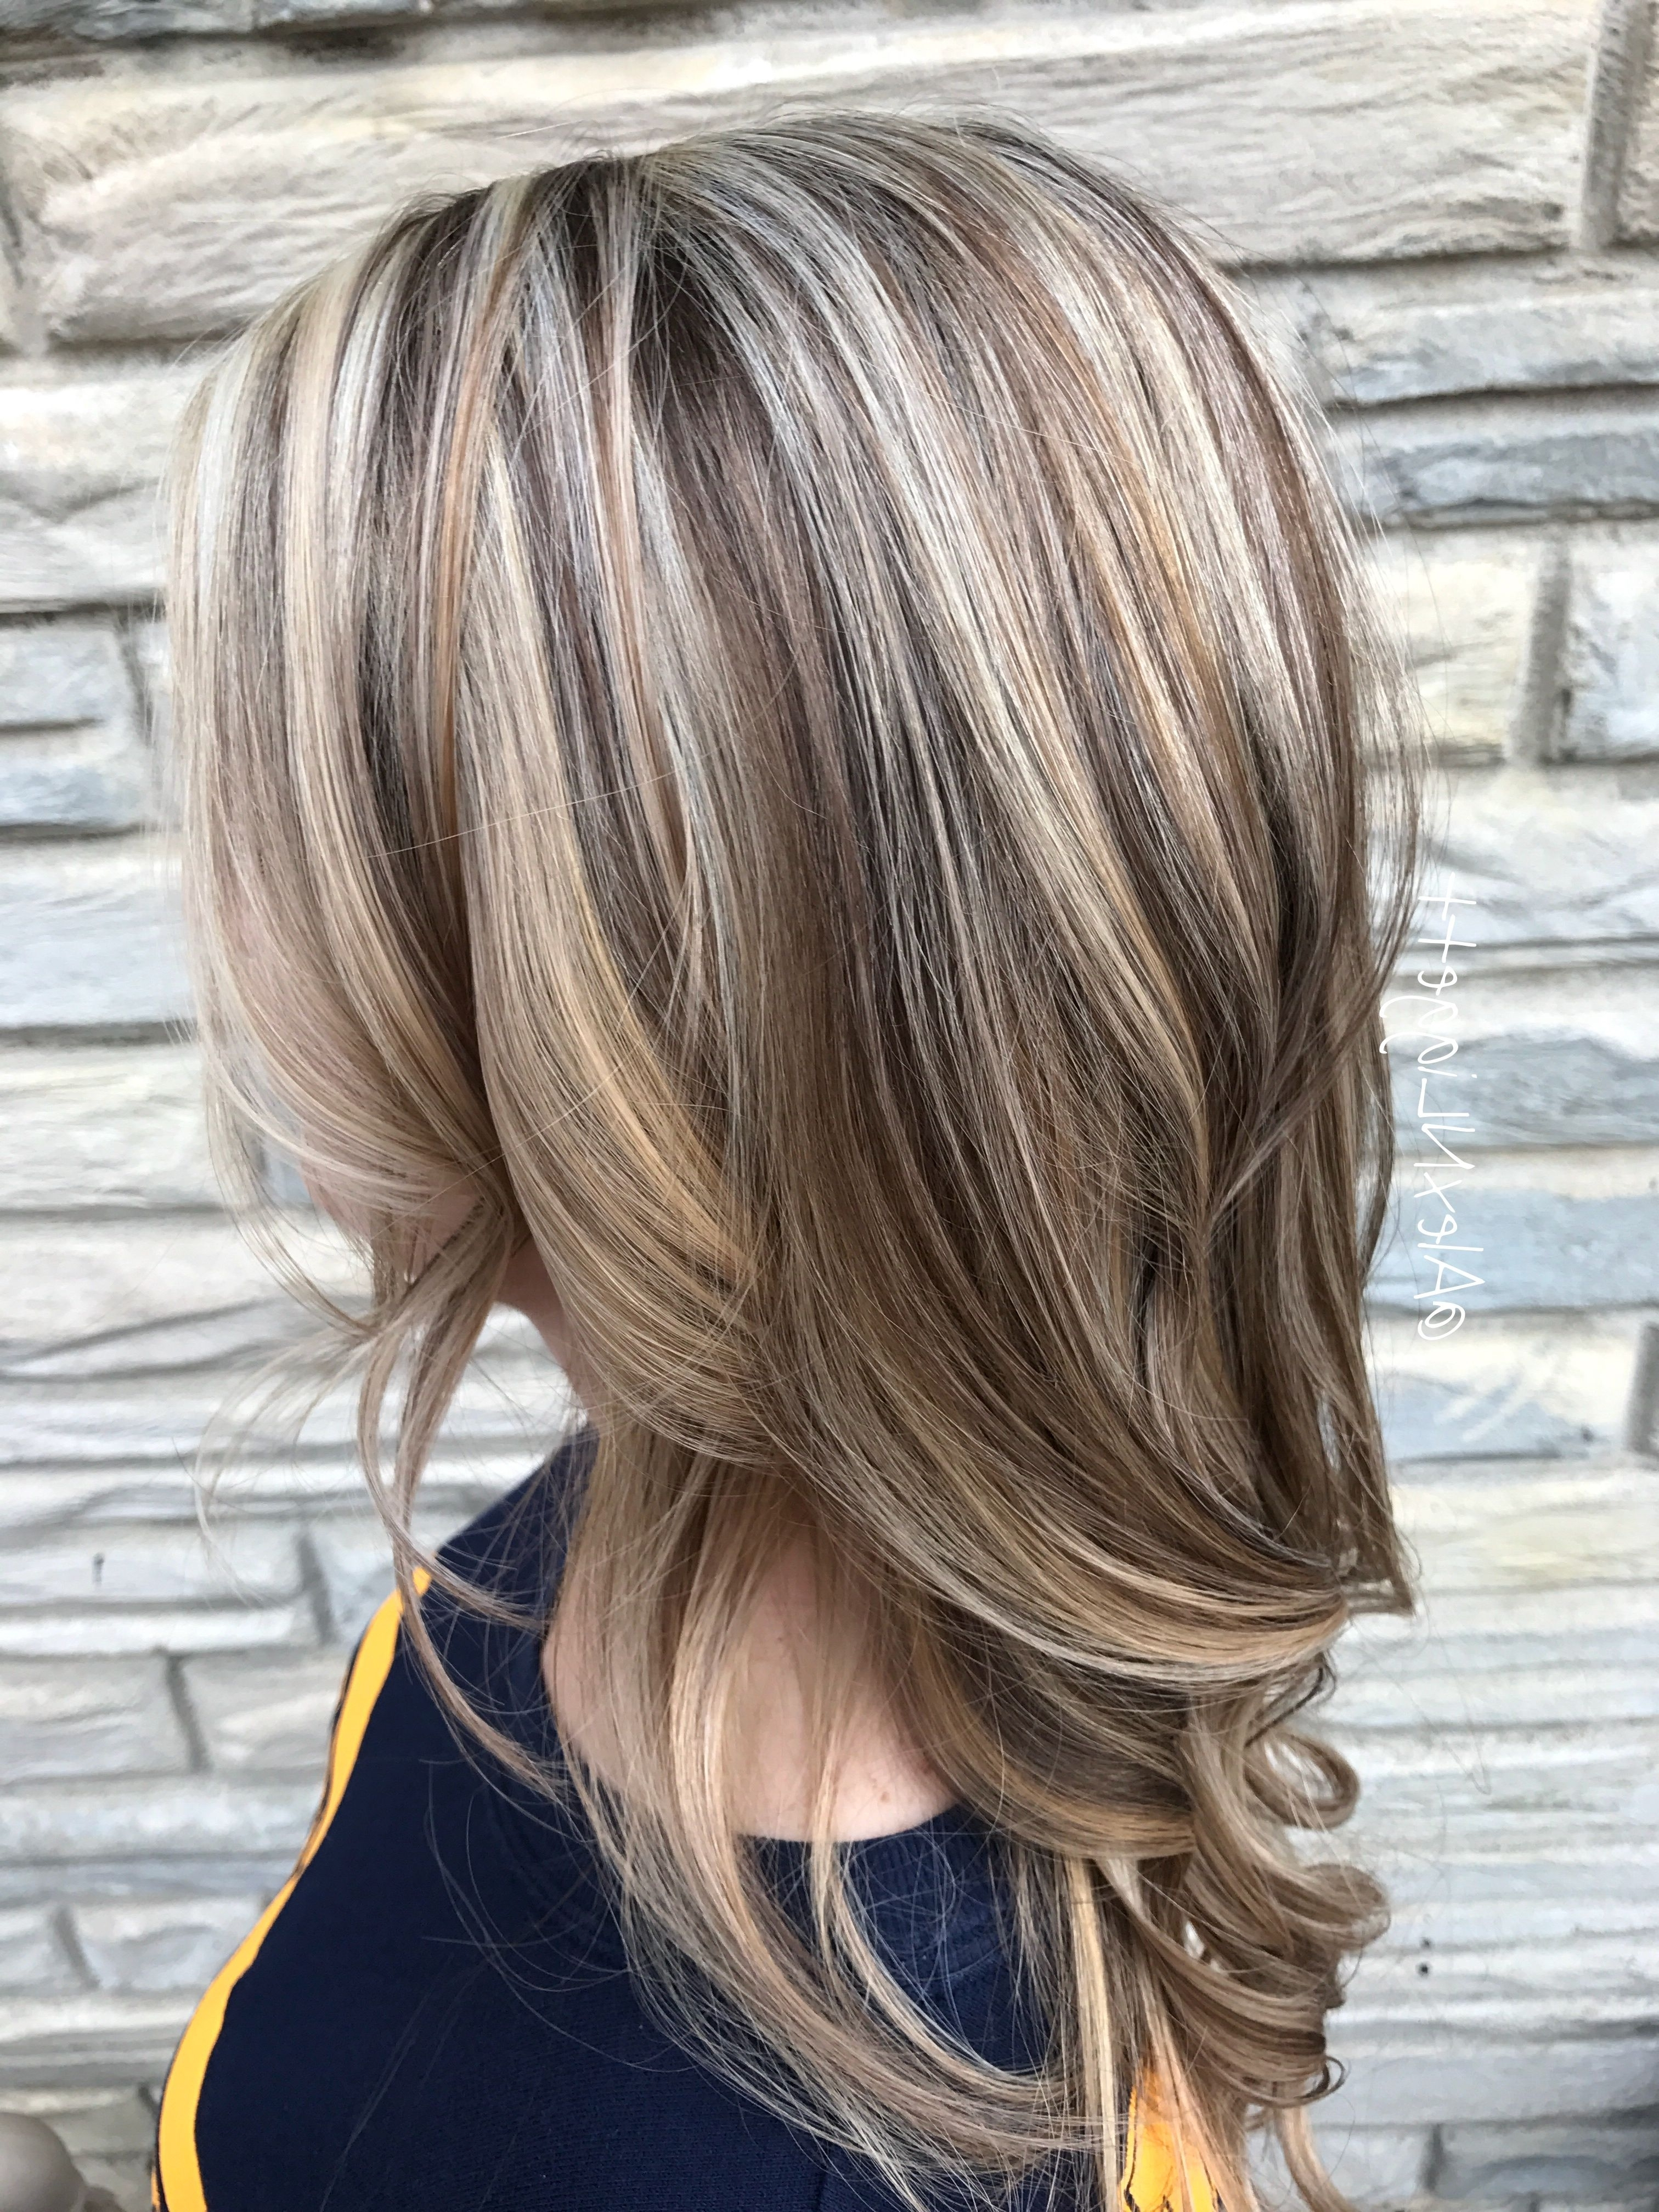 Light Browns Intended For Latest Brown Blonde Layers Hairstyles (View 14 of 20)